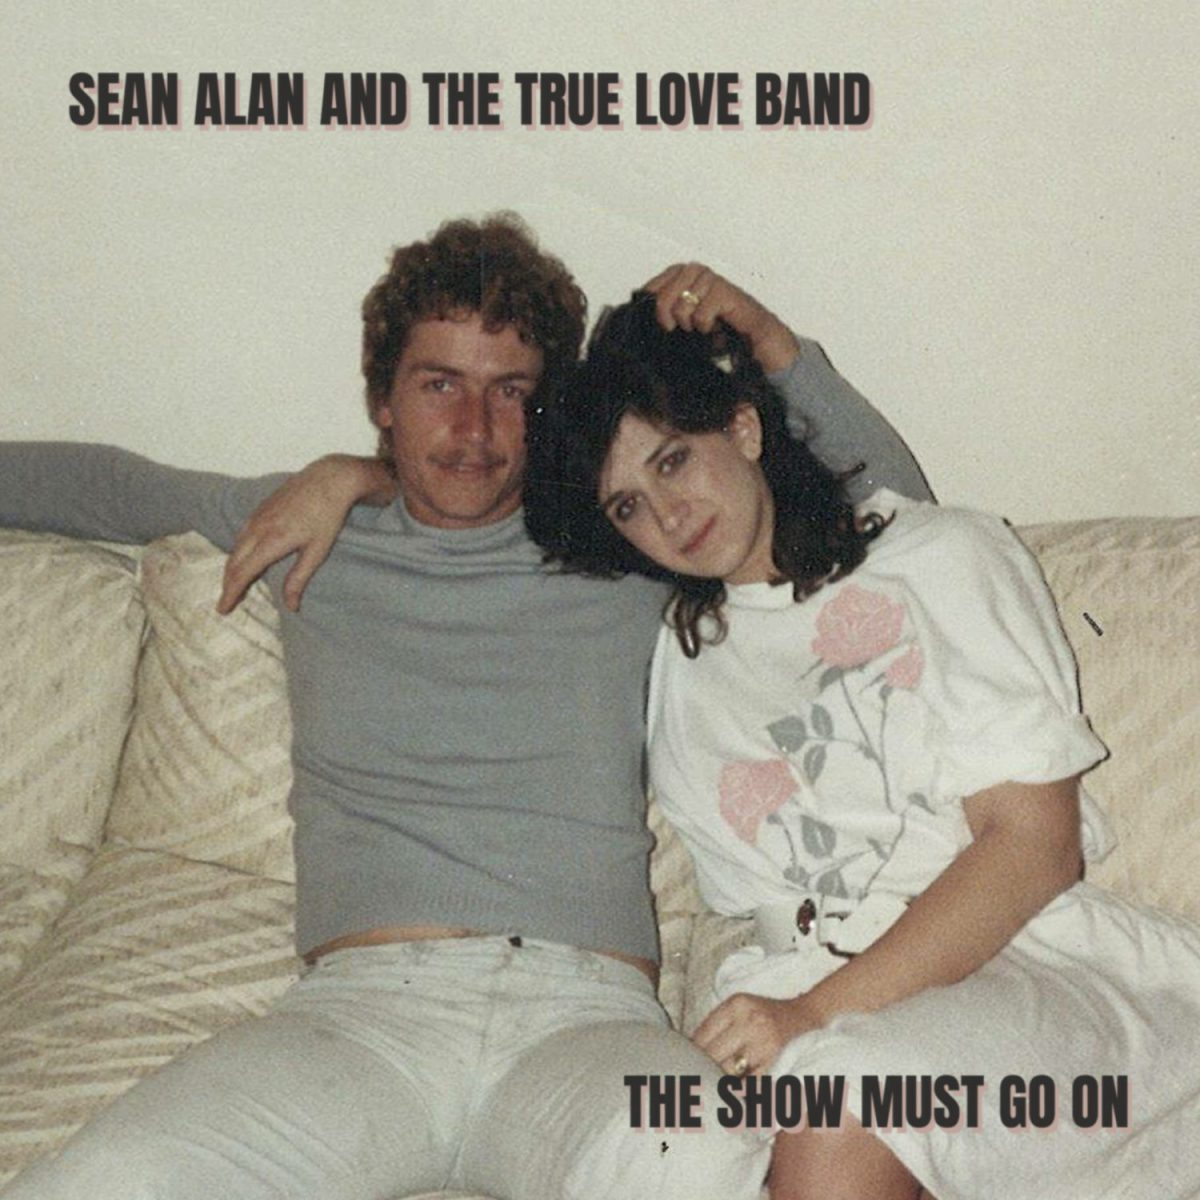 LA musician Sean Alan discusses the formation of The True Love Band, their upcoming album and musical influences